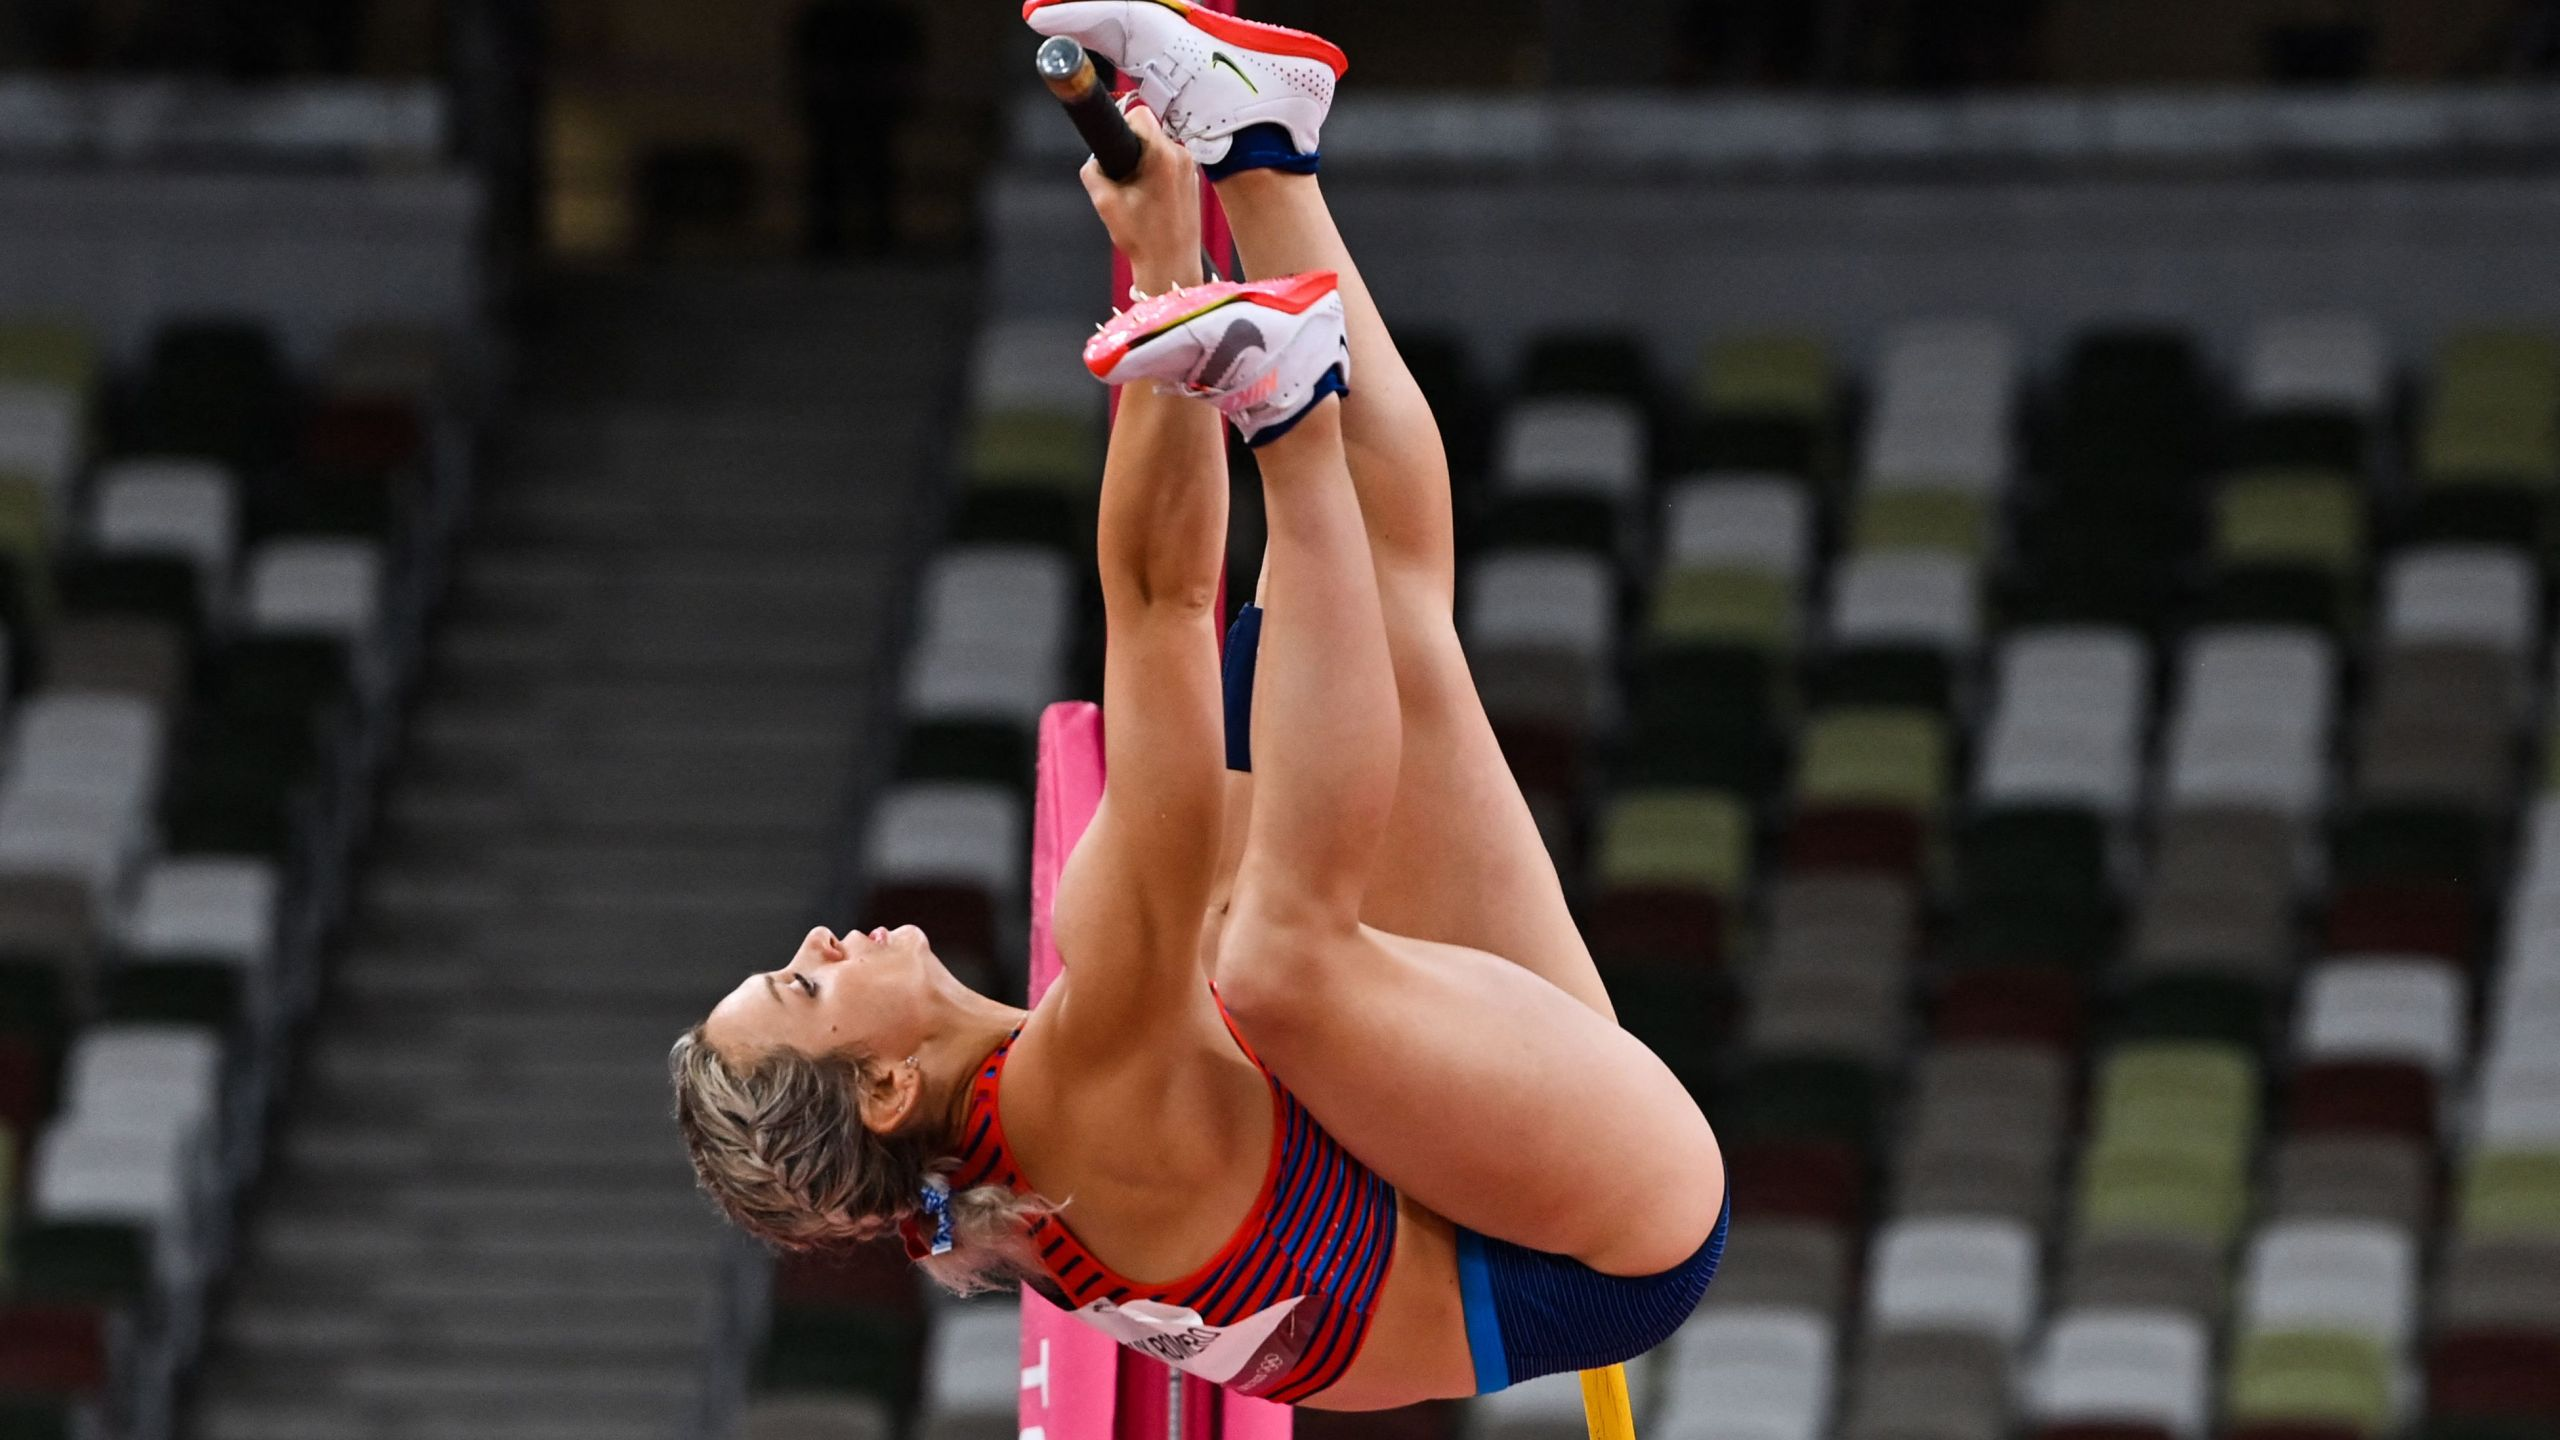 USA's Morgann Leleux Romero competes in the women's pole vault qualification during the Tokyo 2020 Olympic Games at the Olympic Stadium in Tokyo on August 2, 2021. (Photo by Andrej ISAKOVIC / AFP) (Photo by ANDREJ ISAKOVIC/AFP via Getty Images)